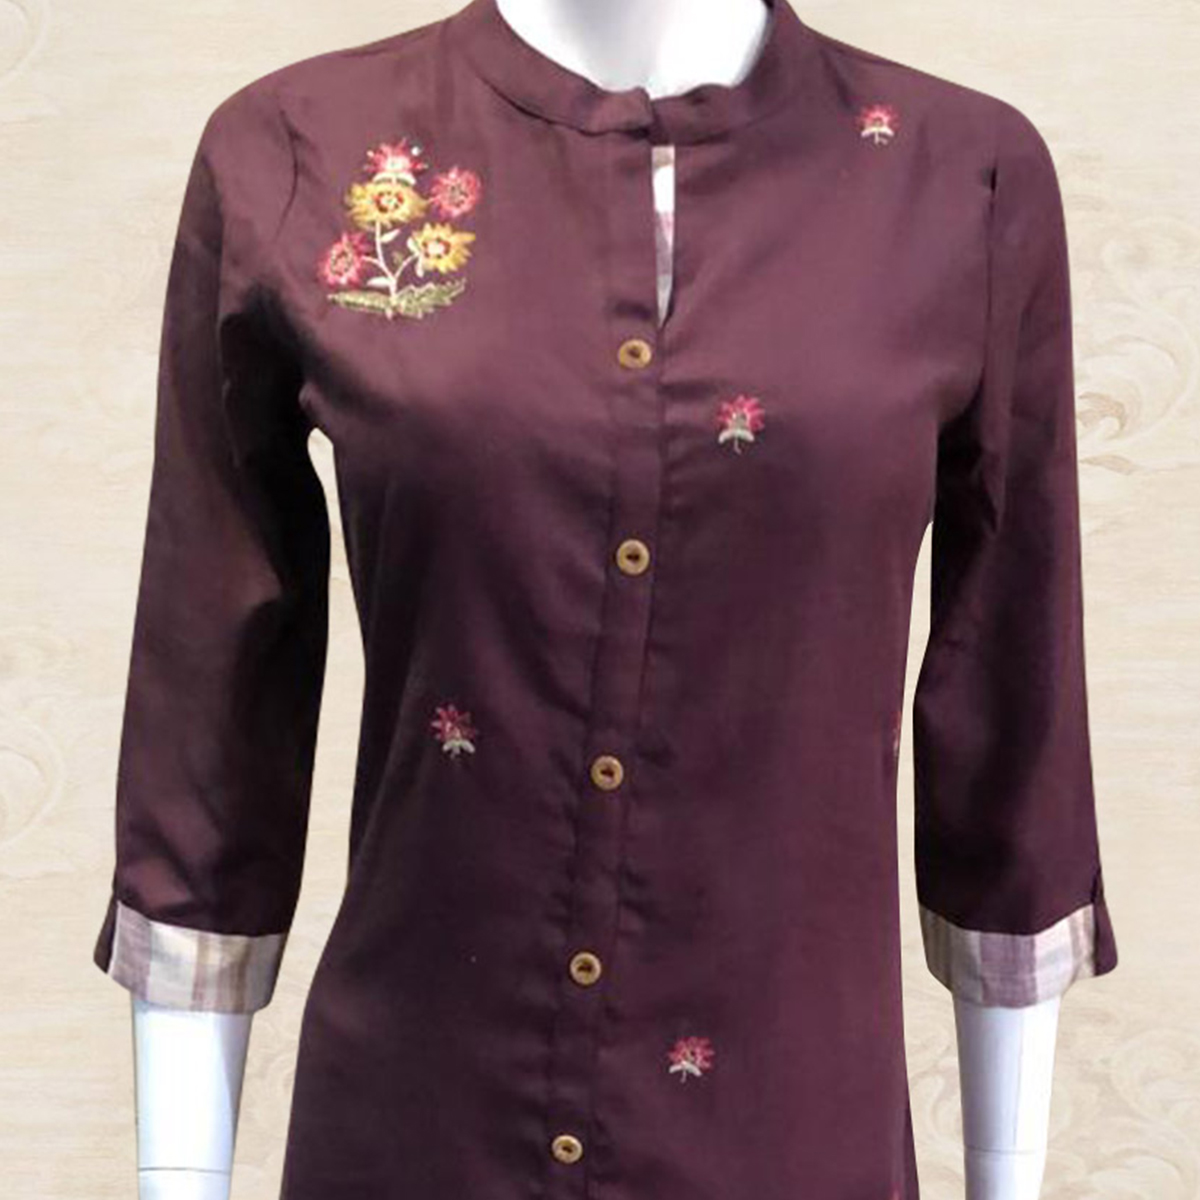 Delightful Maroon Colored Partywear Floral Embroidered Cotton Kurti-Palazzo Set With Dupatta